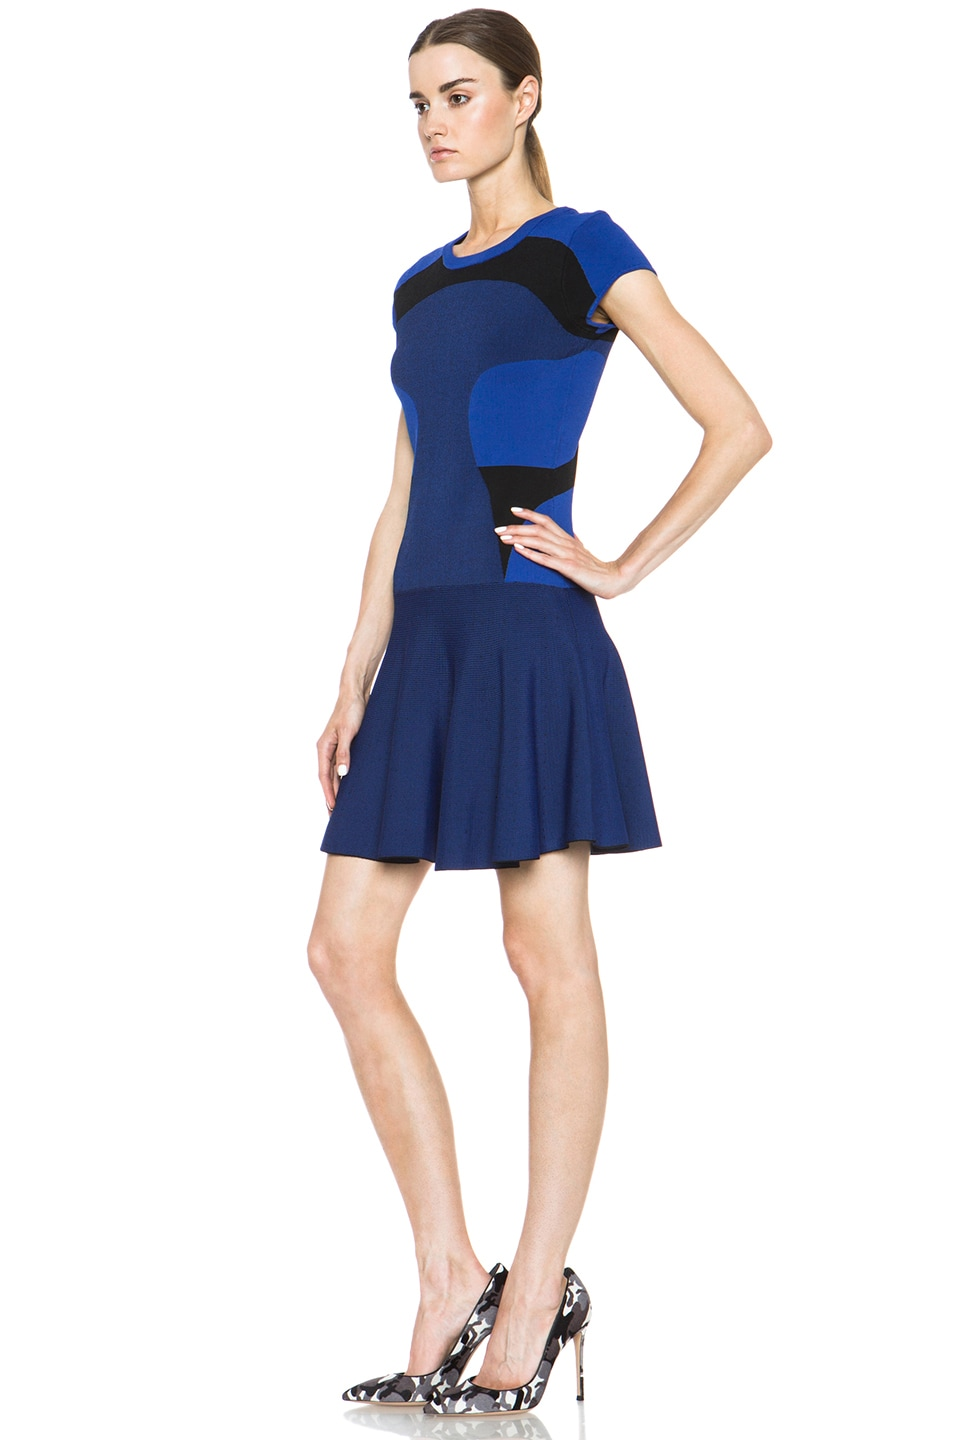 Image 2 of Diane von Furstenberg Renee Dress in Vivid Blue & Black